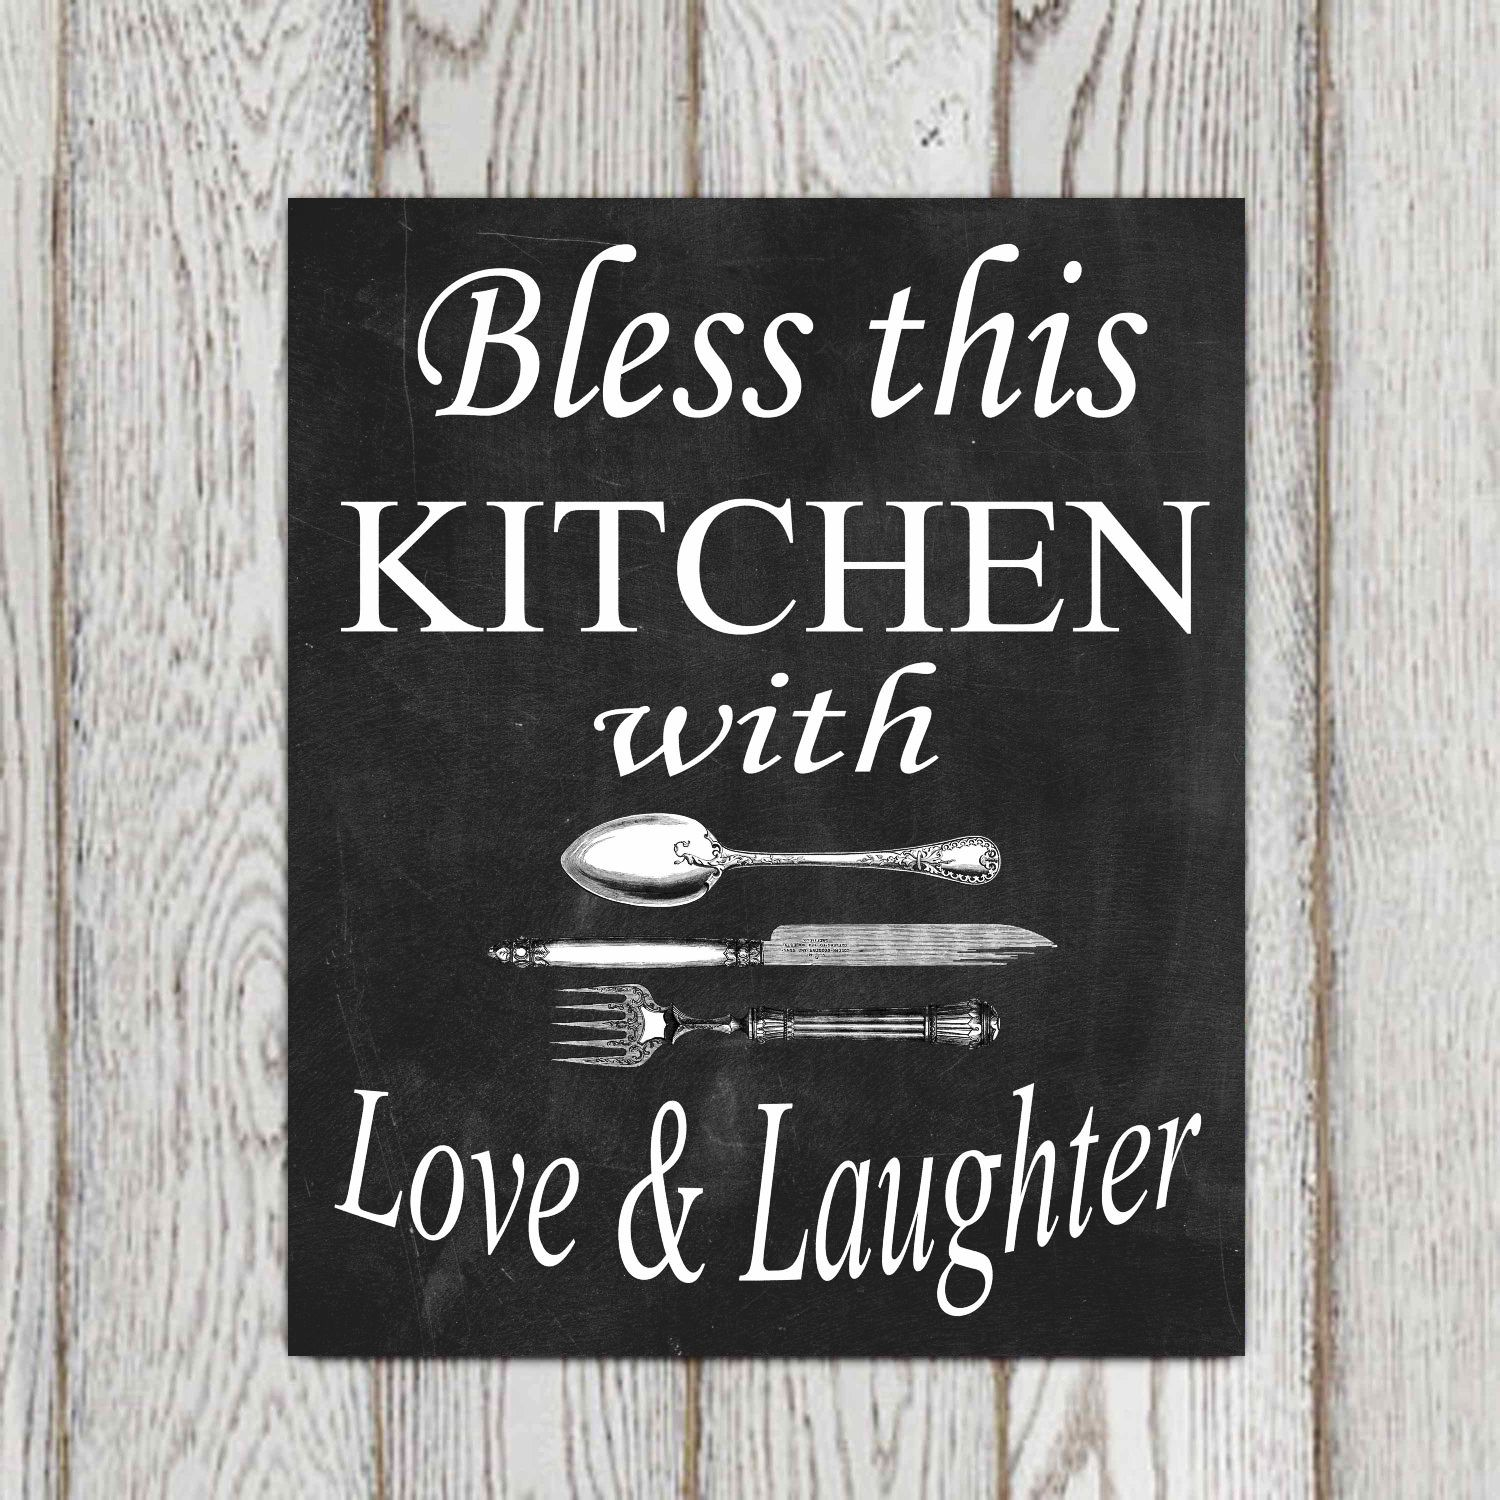 Bless This Kitchen With Love & Laughter :)